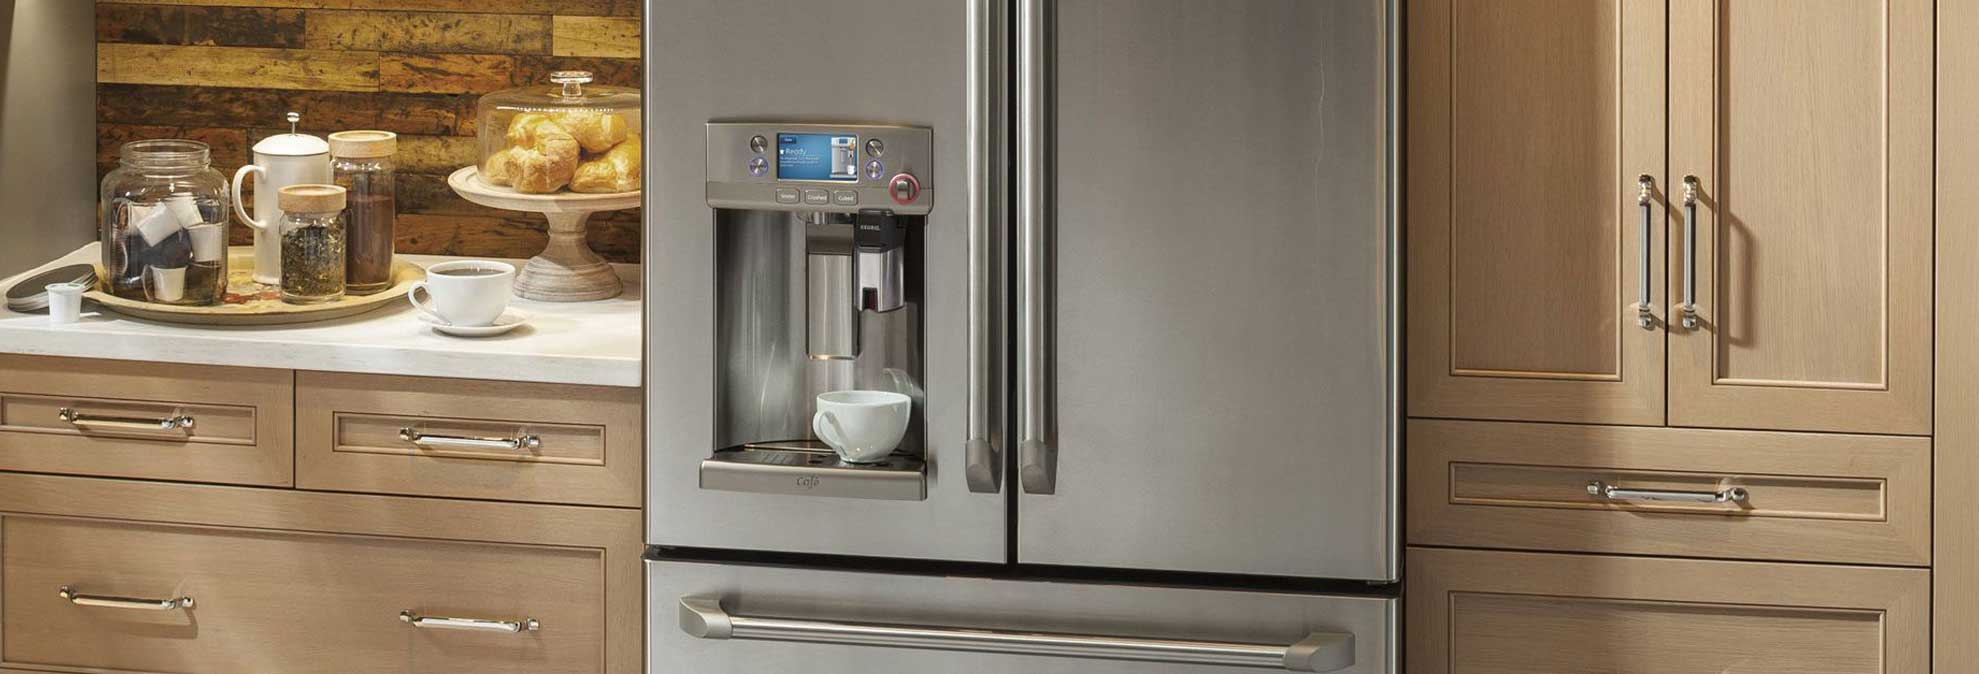 A counter-depth refrigerator